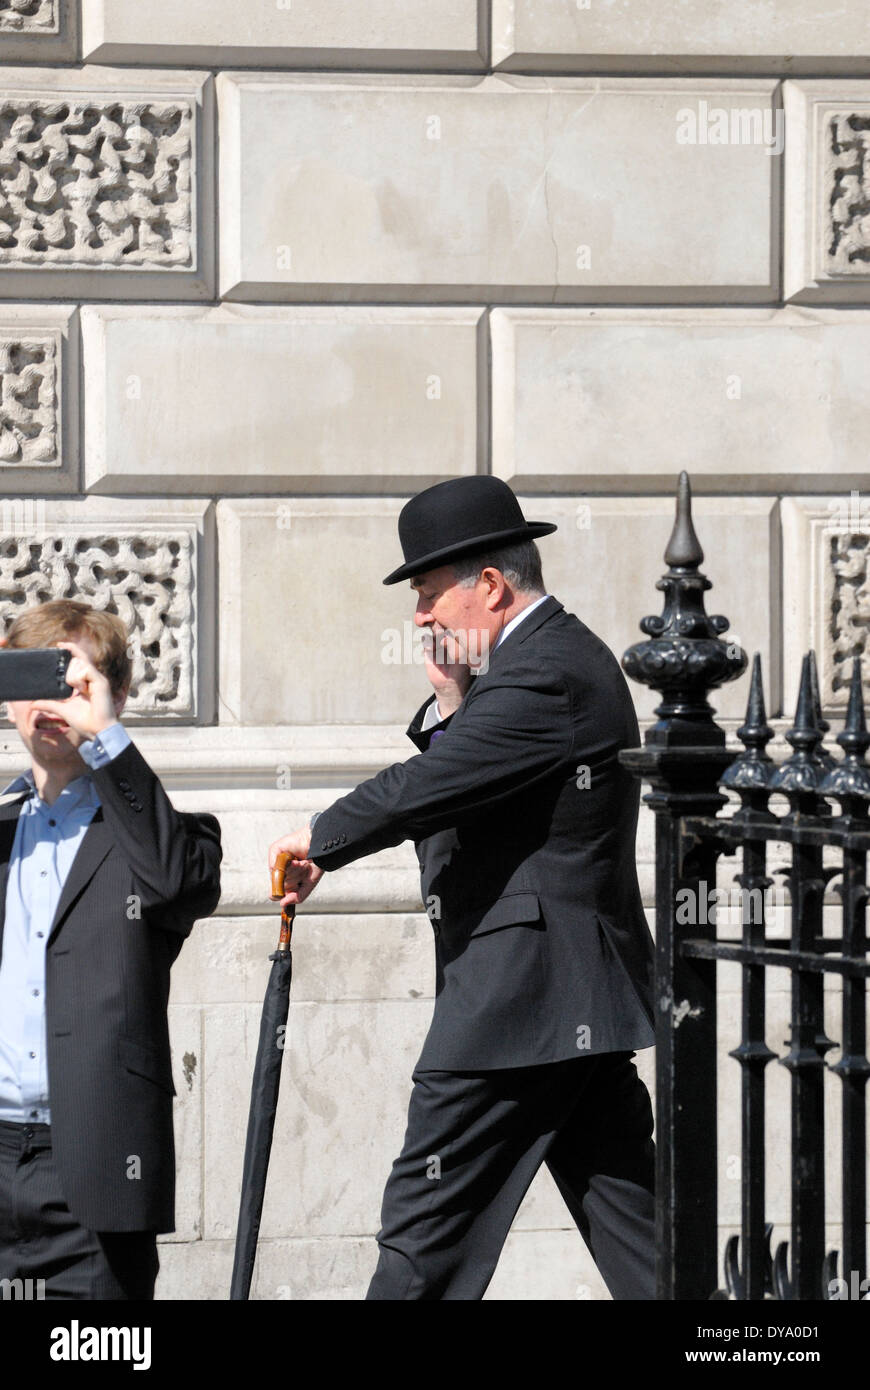 London, England, UK. City gent in a bowler hat on mobile phone in the street Stock Photo